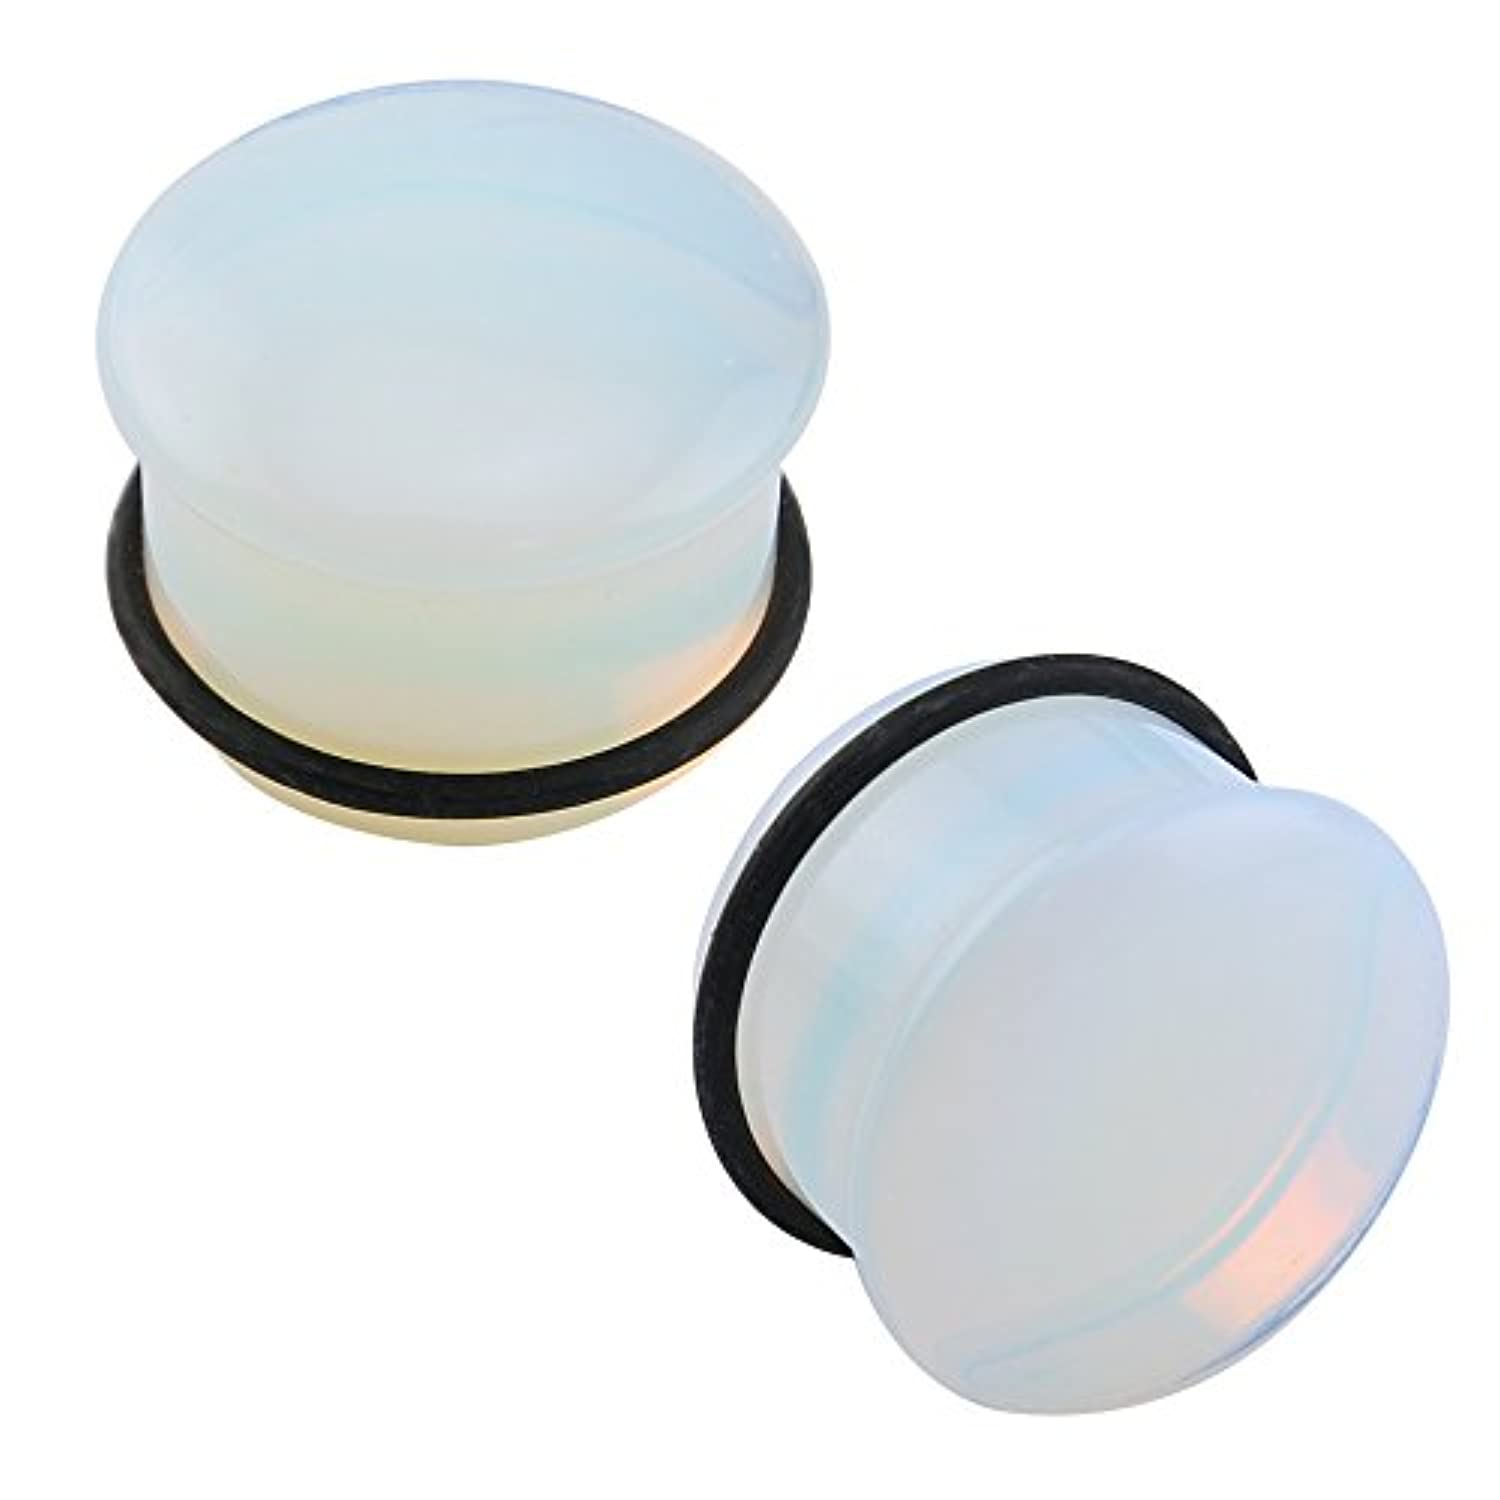 Classier: Buy ZS ZS Single Flare Clear Opalite Moonstone Ear Plugs and Tunnels with O-Ring Stretcher Expander Pair